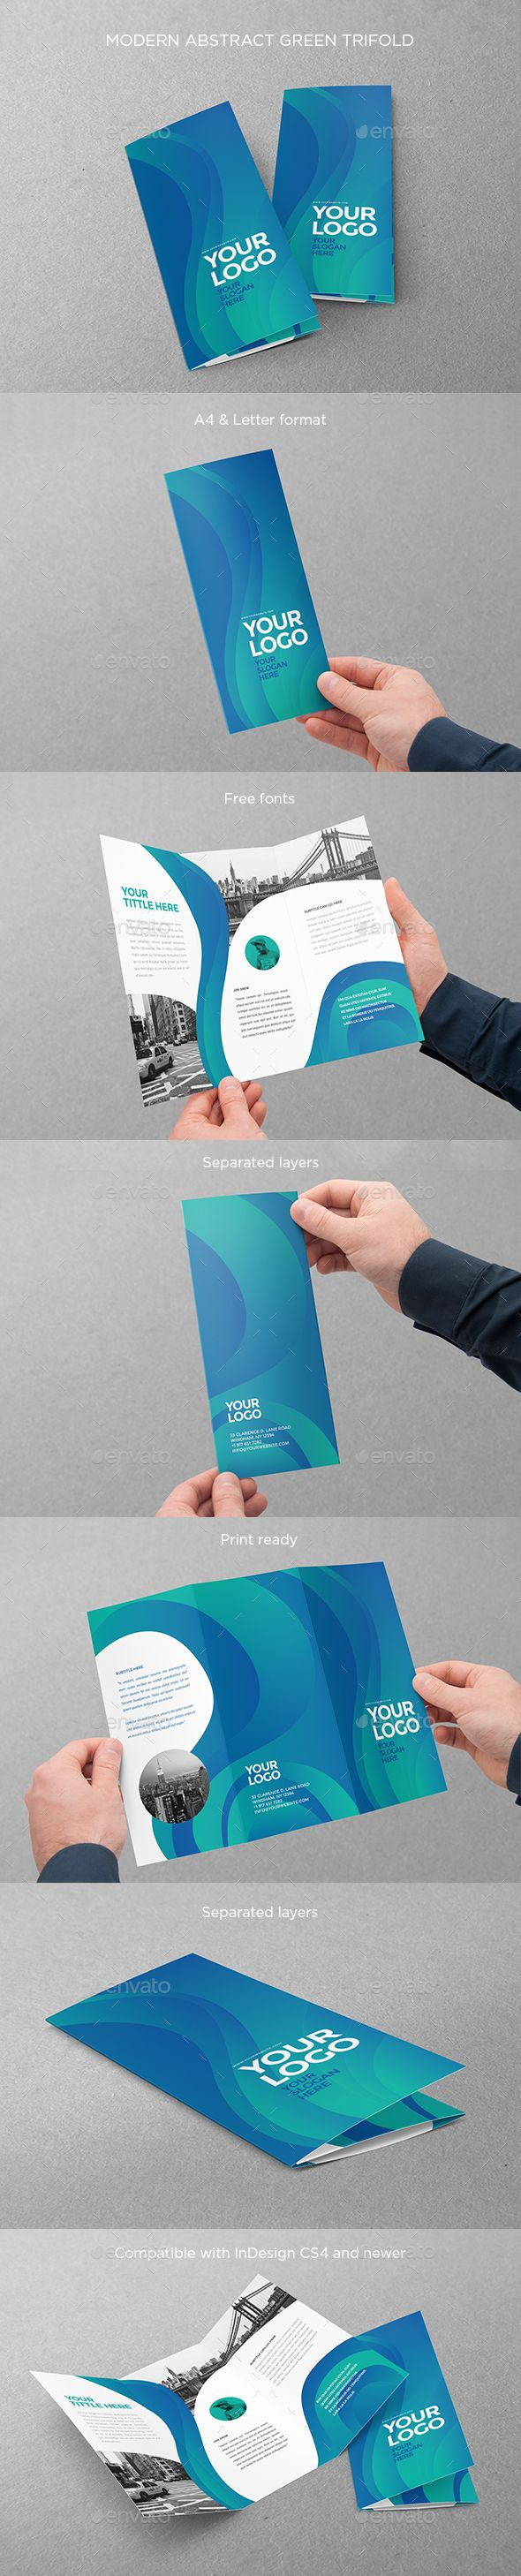 Modern Abstract Green Trifold Brochures Print Template InDesign INDD